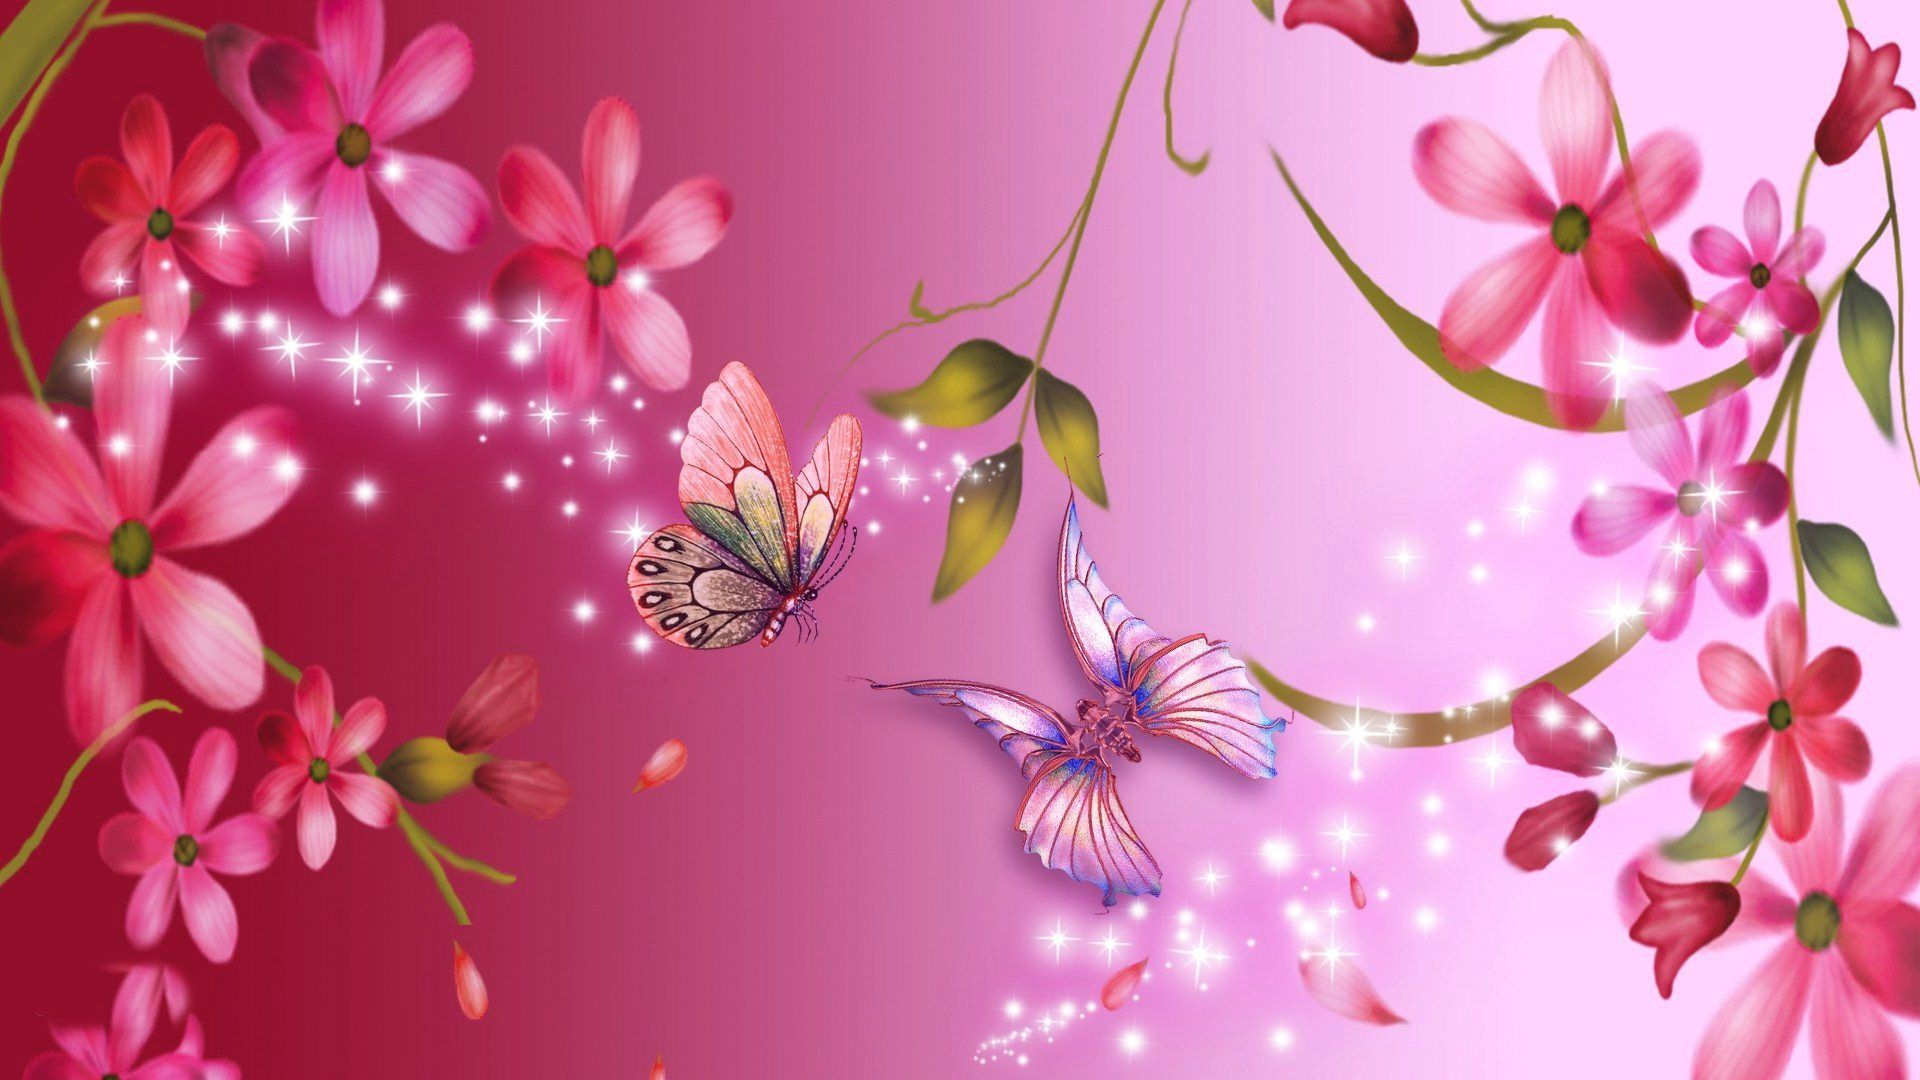 Pink Flower Wallpapers 1080p For Desktop Wallpaper